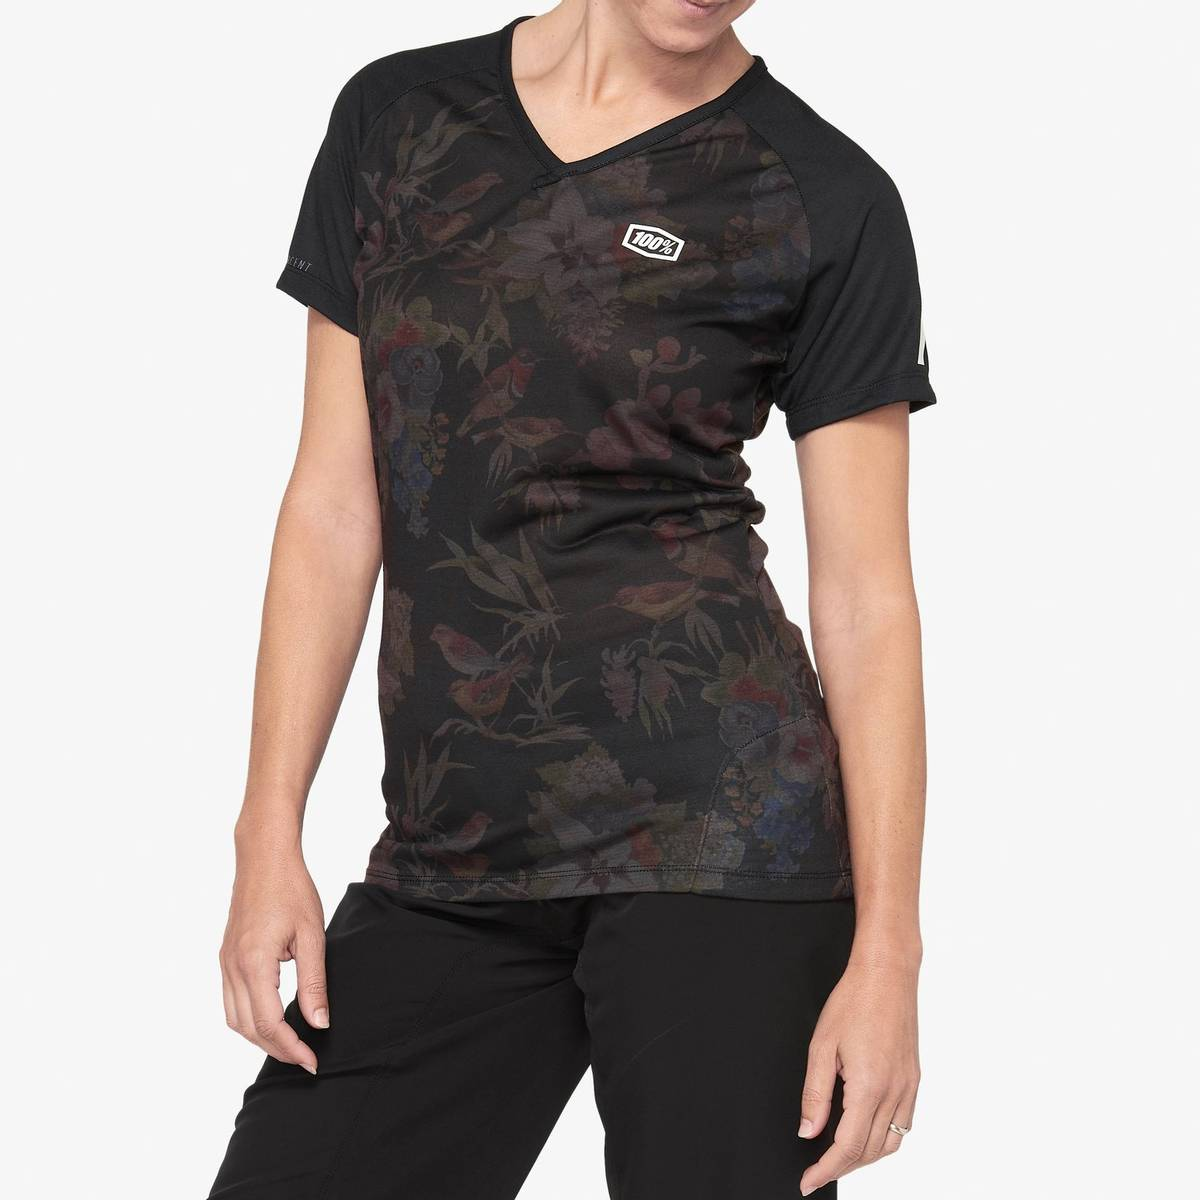 100% AIRMATIC Women's Jersey Black Floral